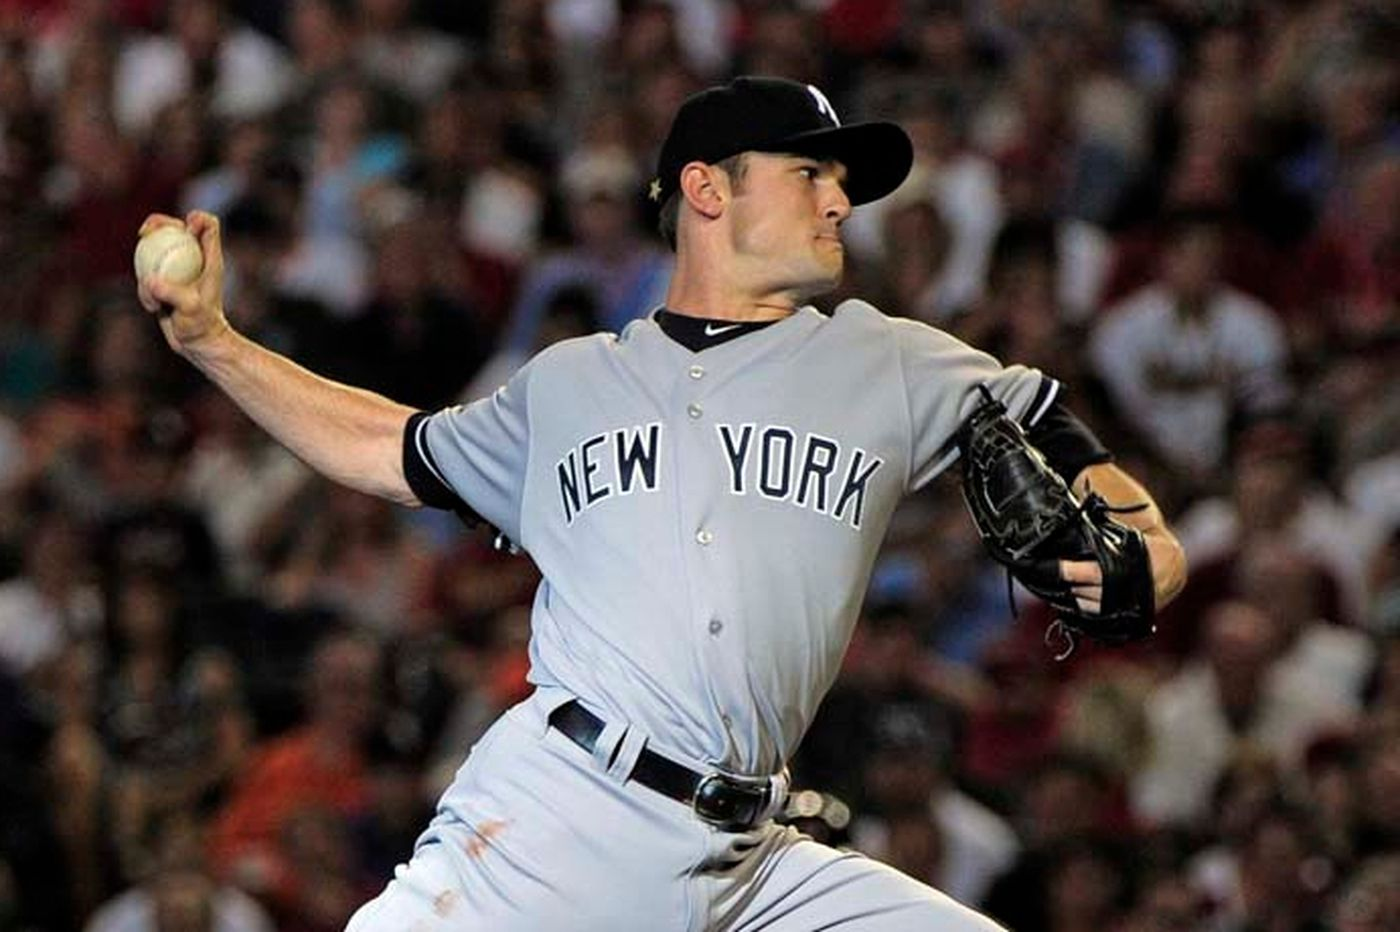 Phillies sign relief pitcher David Robertson, who was his own agent